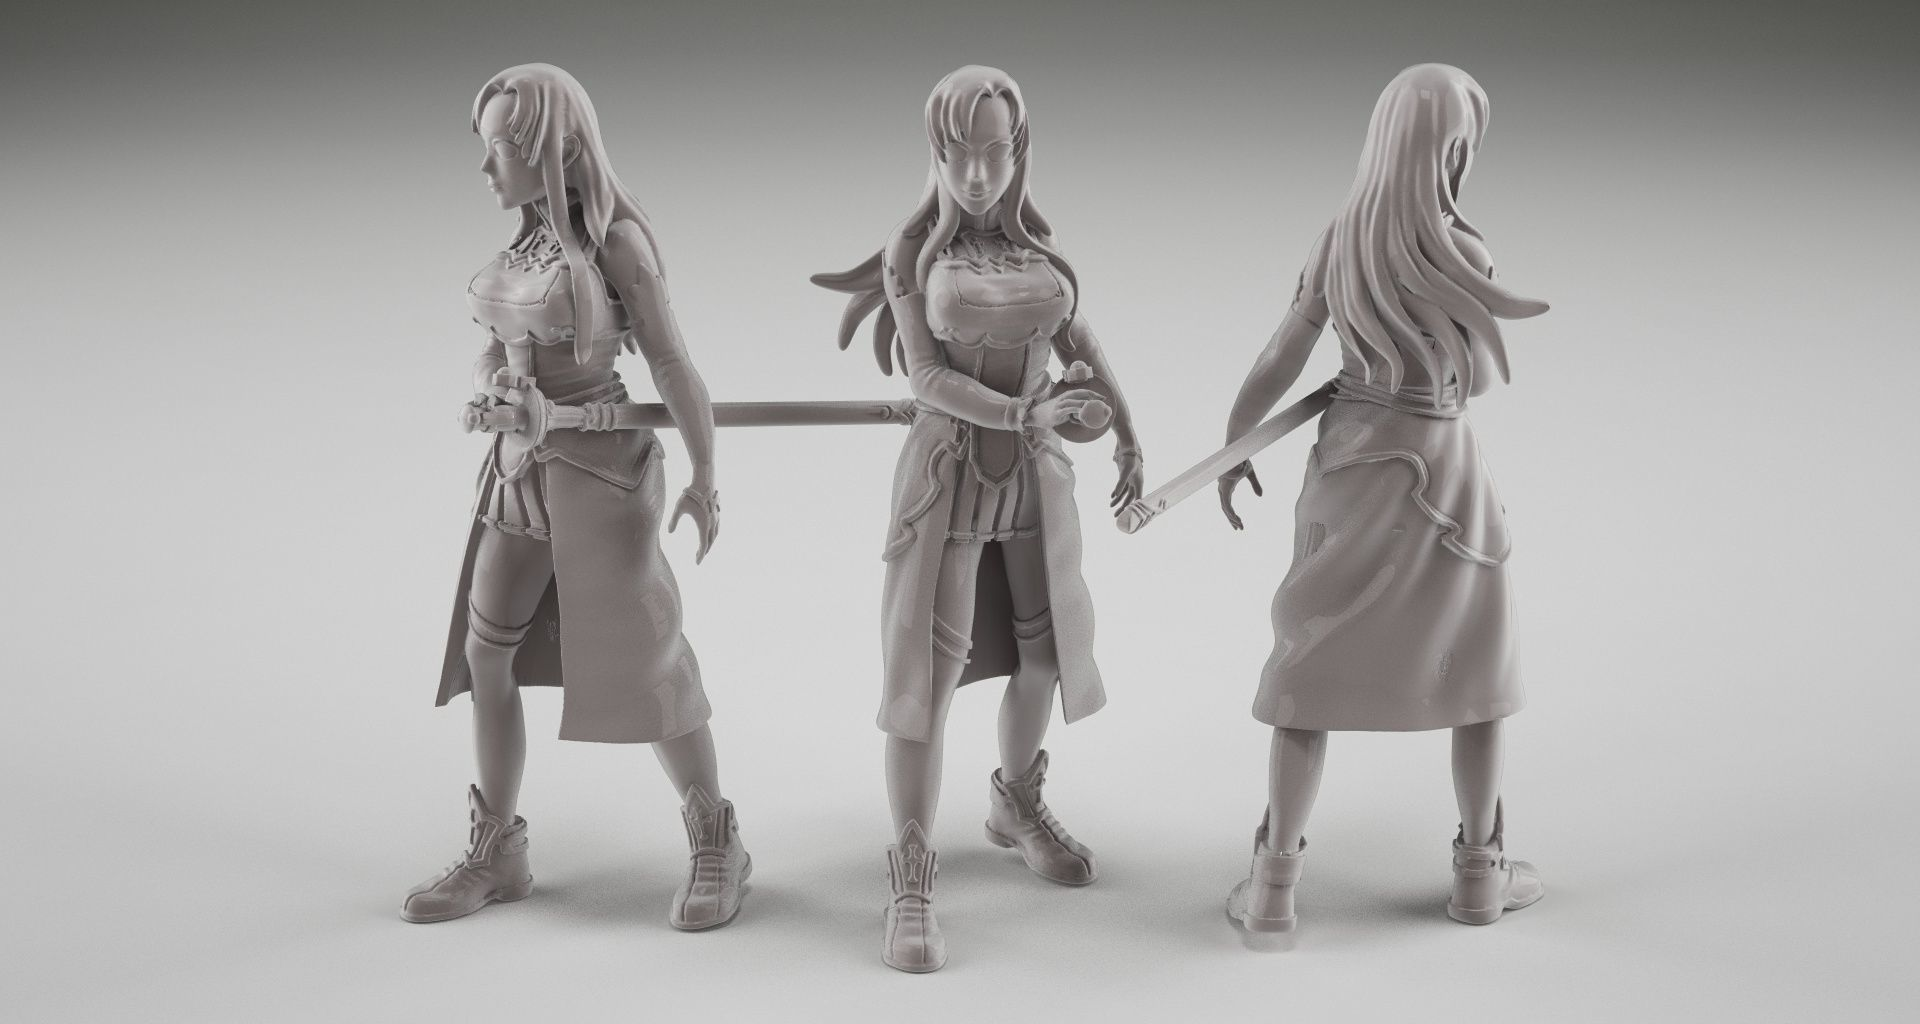 Anime 3D Print: 10 Best Sources for Anime Figurines | All3DP